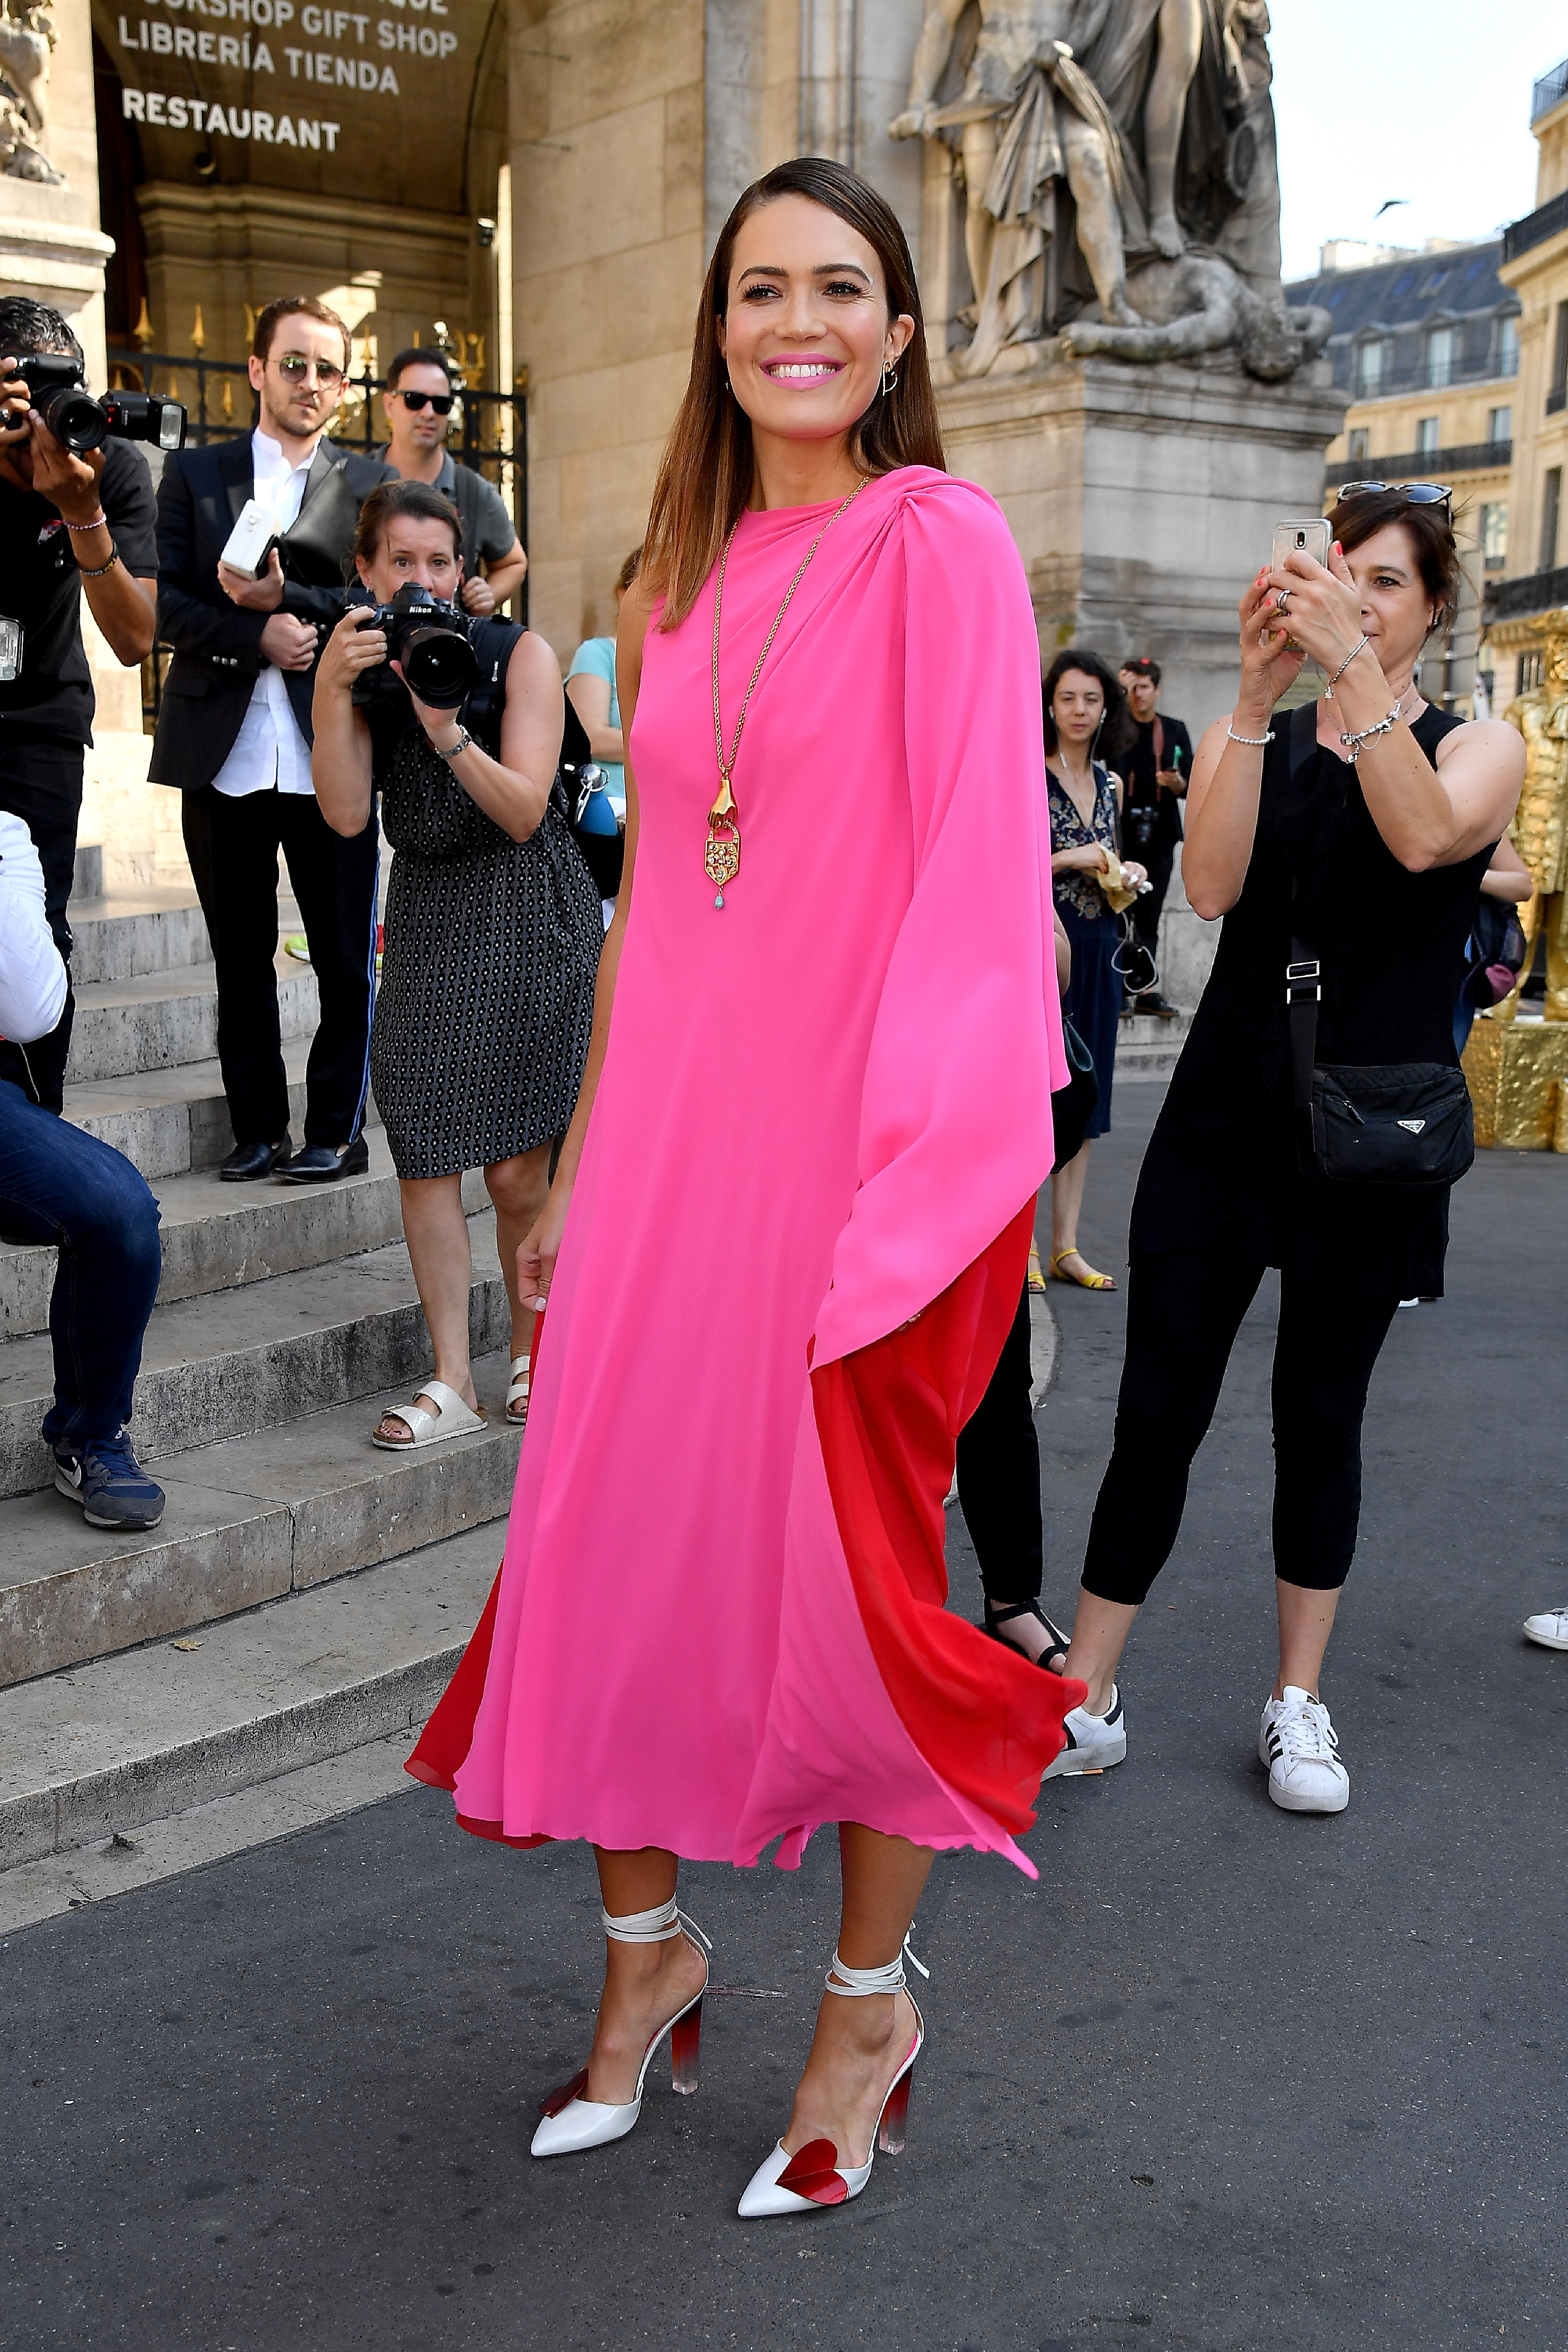 """Paris Haute Couture Fashion Week -- a week-long extravaganza where <a href=""""https://style.nine.com.au/2016/11/28/10/01/iconic-celebrity-hairstyles"""" target=""""_blank"""" title=""""celebrities"""">celebrities</a> and high fashion come together -- is in full flight, but the made-to-measure creations may have stiff competition in actress and singer, Mandy Moore.<br /> <br /> The <em>This is Us</em> star has taken the Parisian city by storm, appearing in the front row at Dior, Schiaparelli, Ralph & Russo and a special event hosted by Versace, in several show-stopping looks that have commanded the attention of the local paparazzi.<br /> <br /> From her first appearance in a hot pink and red frock at the iconic Haute Couture house created by Elsa Schiaparelli, to her rocker stylings at Dior, the 34-year-old is proving herself as a fashion force to be reckoned with.<br /> <br /> Although Moore may be the breakout style star of this year's Haute Couture Fashion Week, Katie Holmes, <a href=""""http://https://style.nine.com.au/2018/07/02/11/35/uma-thurman-miu-miu-runway-kate-bosworth-naomi-campbell"""" target=""""_blank"""" title=""""Kate Bosworth"""">Kate Bosworth</a>, Karlie Kloss and Australian actress, Melissa George, have given her a good run for her money.<br /> <br /> Click through to see all the best celebrity style moments from Paris Haute Couture Fashion Week."""